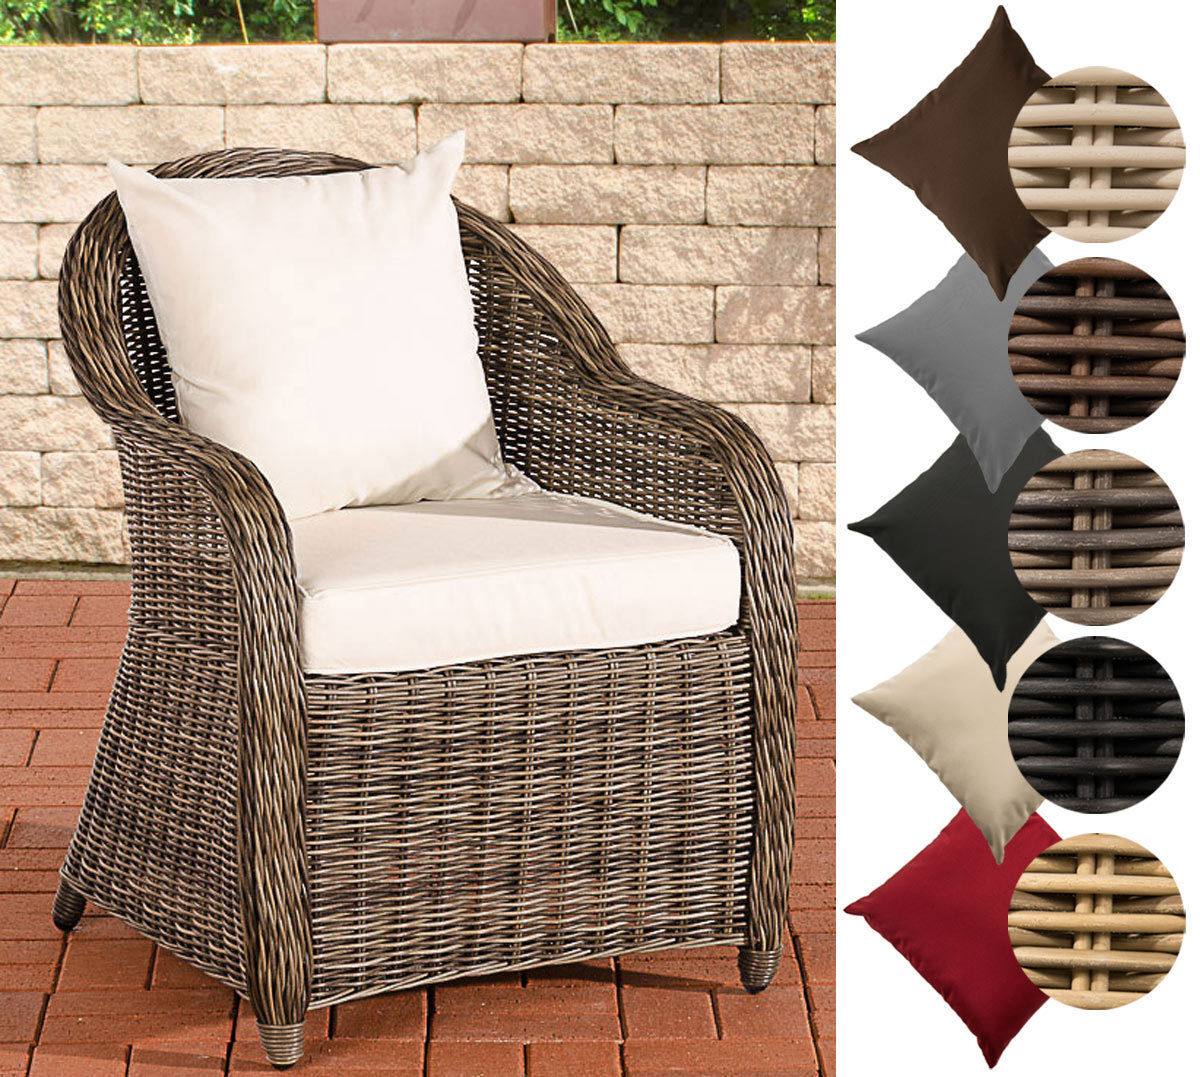 clp poly rattan sessel farsund 5mm rund rattan alu gestell 100 rostfrei grau meliert. Black Bedroom Furniture Sets. Home Design Ideas